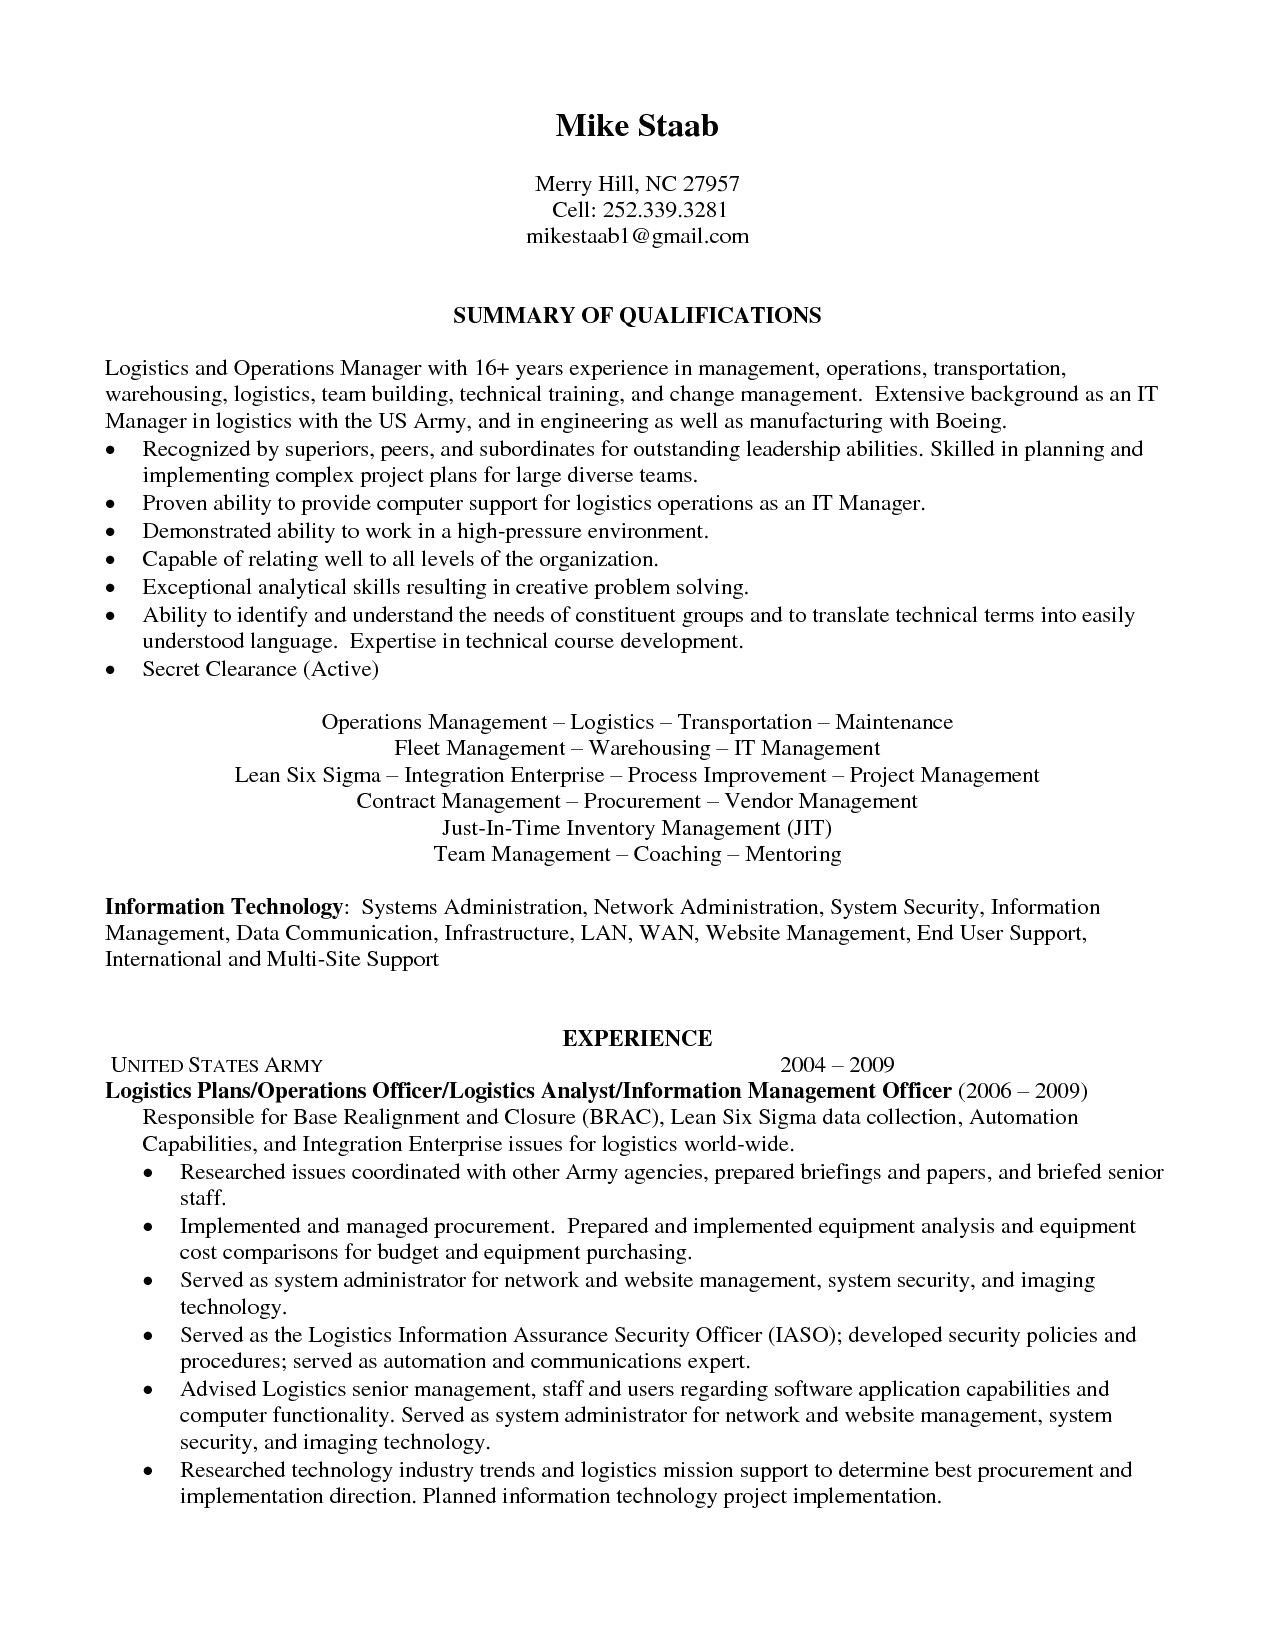 system administrator resume template Collection-Related Post system administrator resume regarding Fresh Grapher Resume Sample Beautiful Resume Quotes 0d 12-e